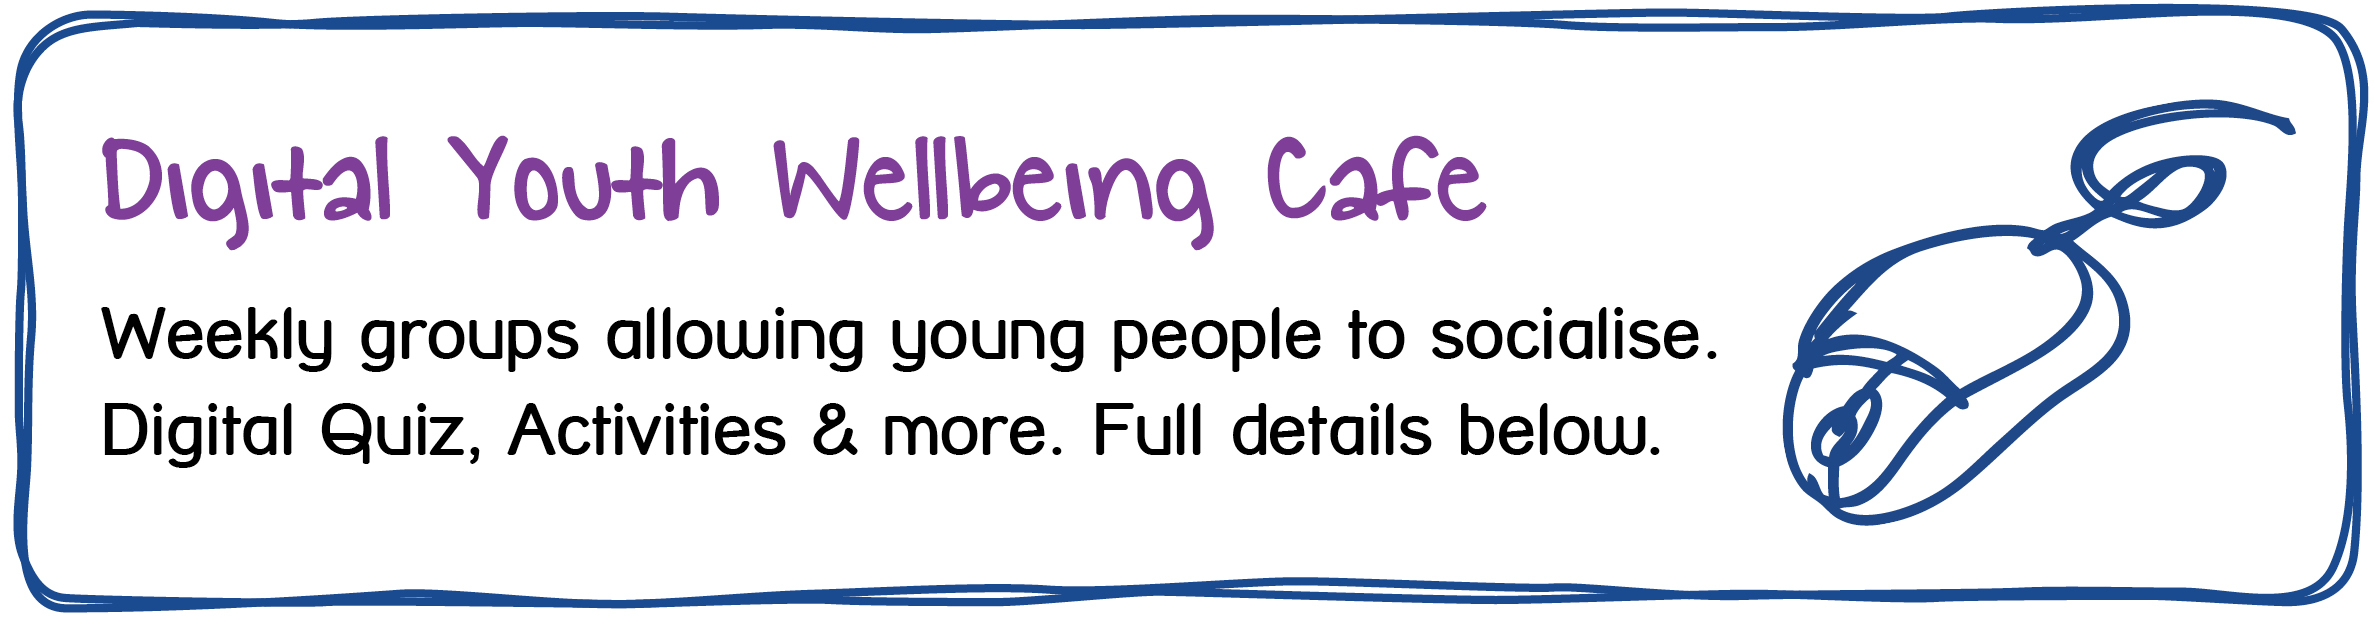 Digital Youth Wellbeing Cafe Weekly groups allowing young people to socialise. Digital Quiz, Activities & more. Full details below.